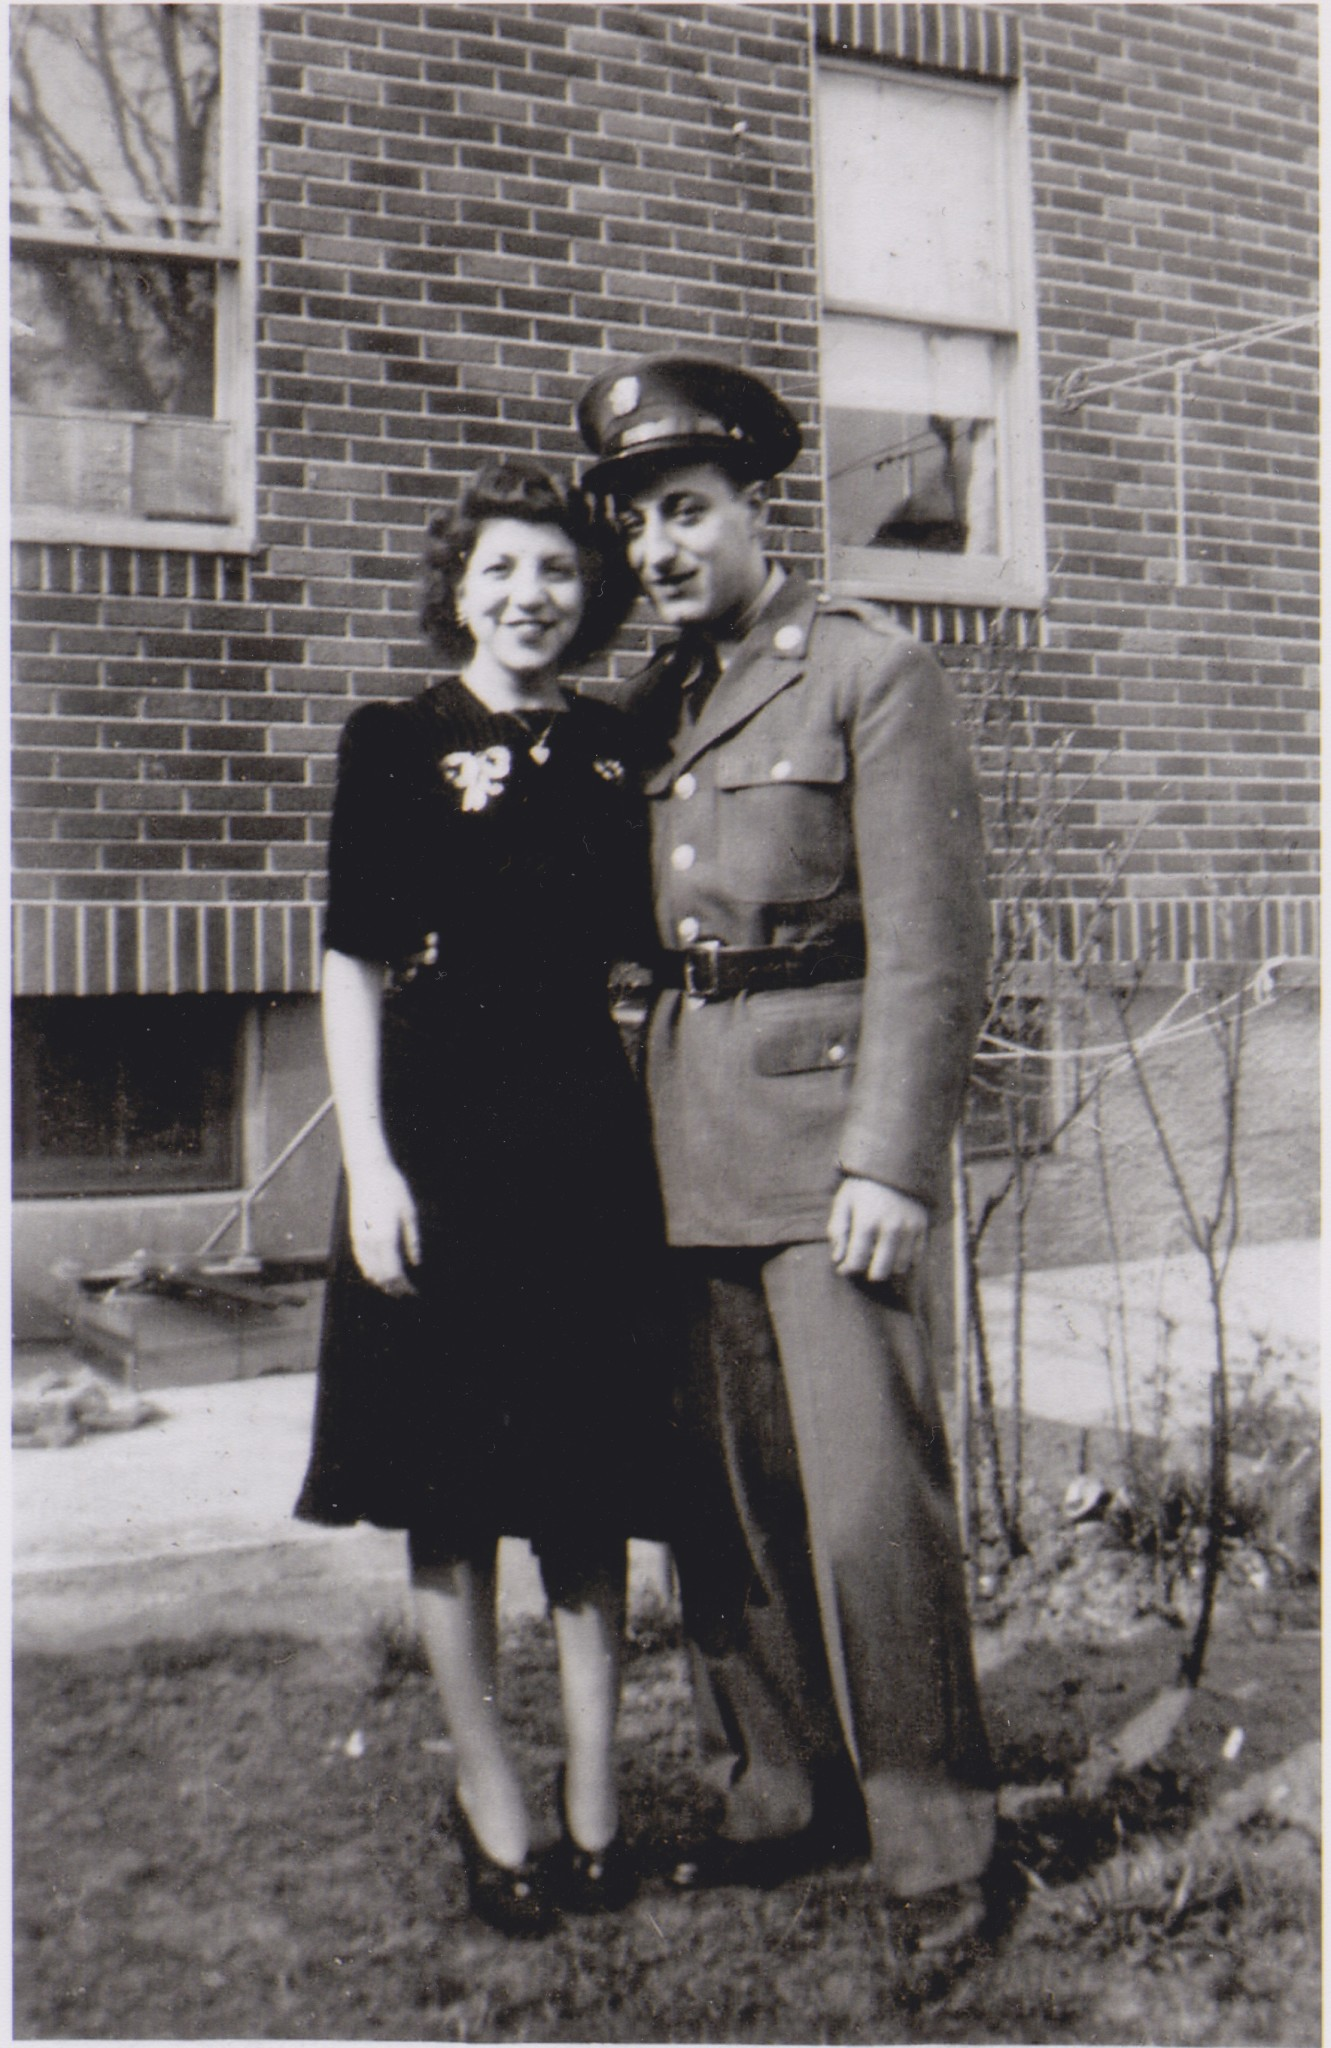 My Grandparents During WWII